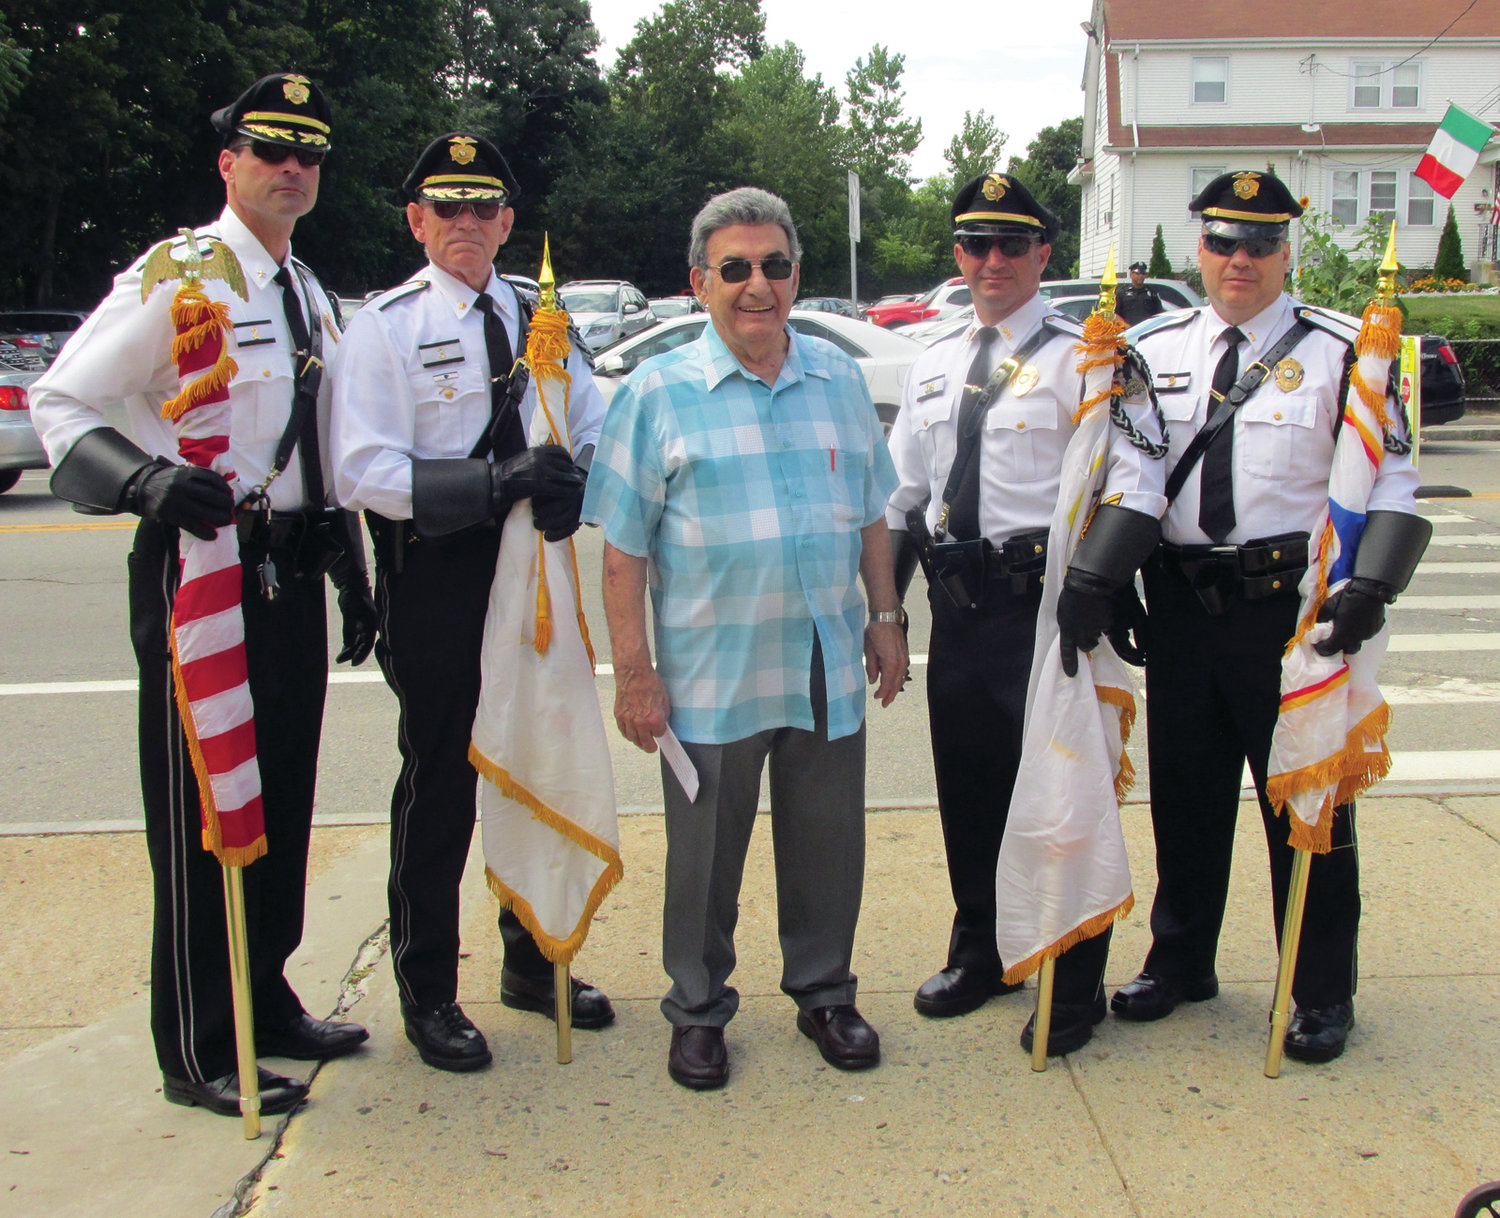 PROUD PATROL: John Ricci, center, co-chairman of the Saint Rocco's Feast and Festival, thanks the Johnston Police Color Guard for leading the procession during last year's festivities.